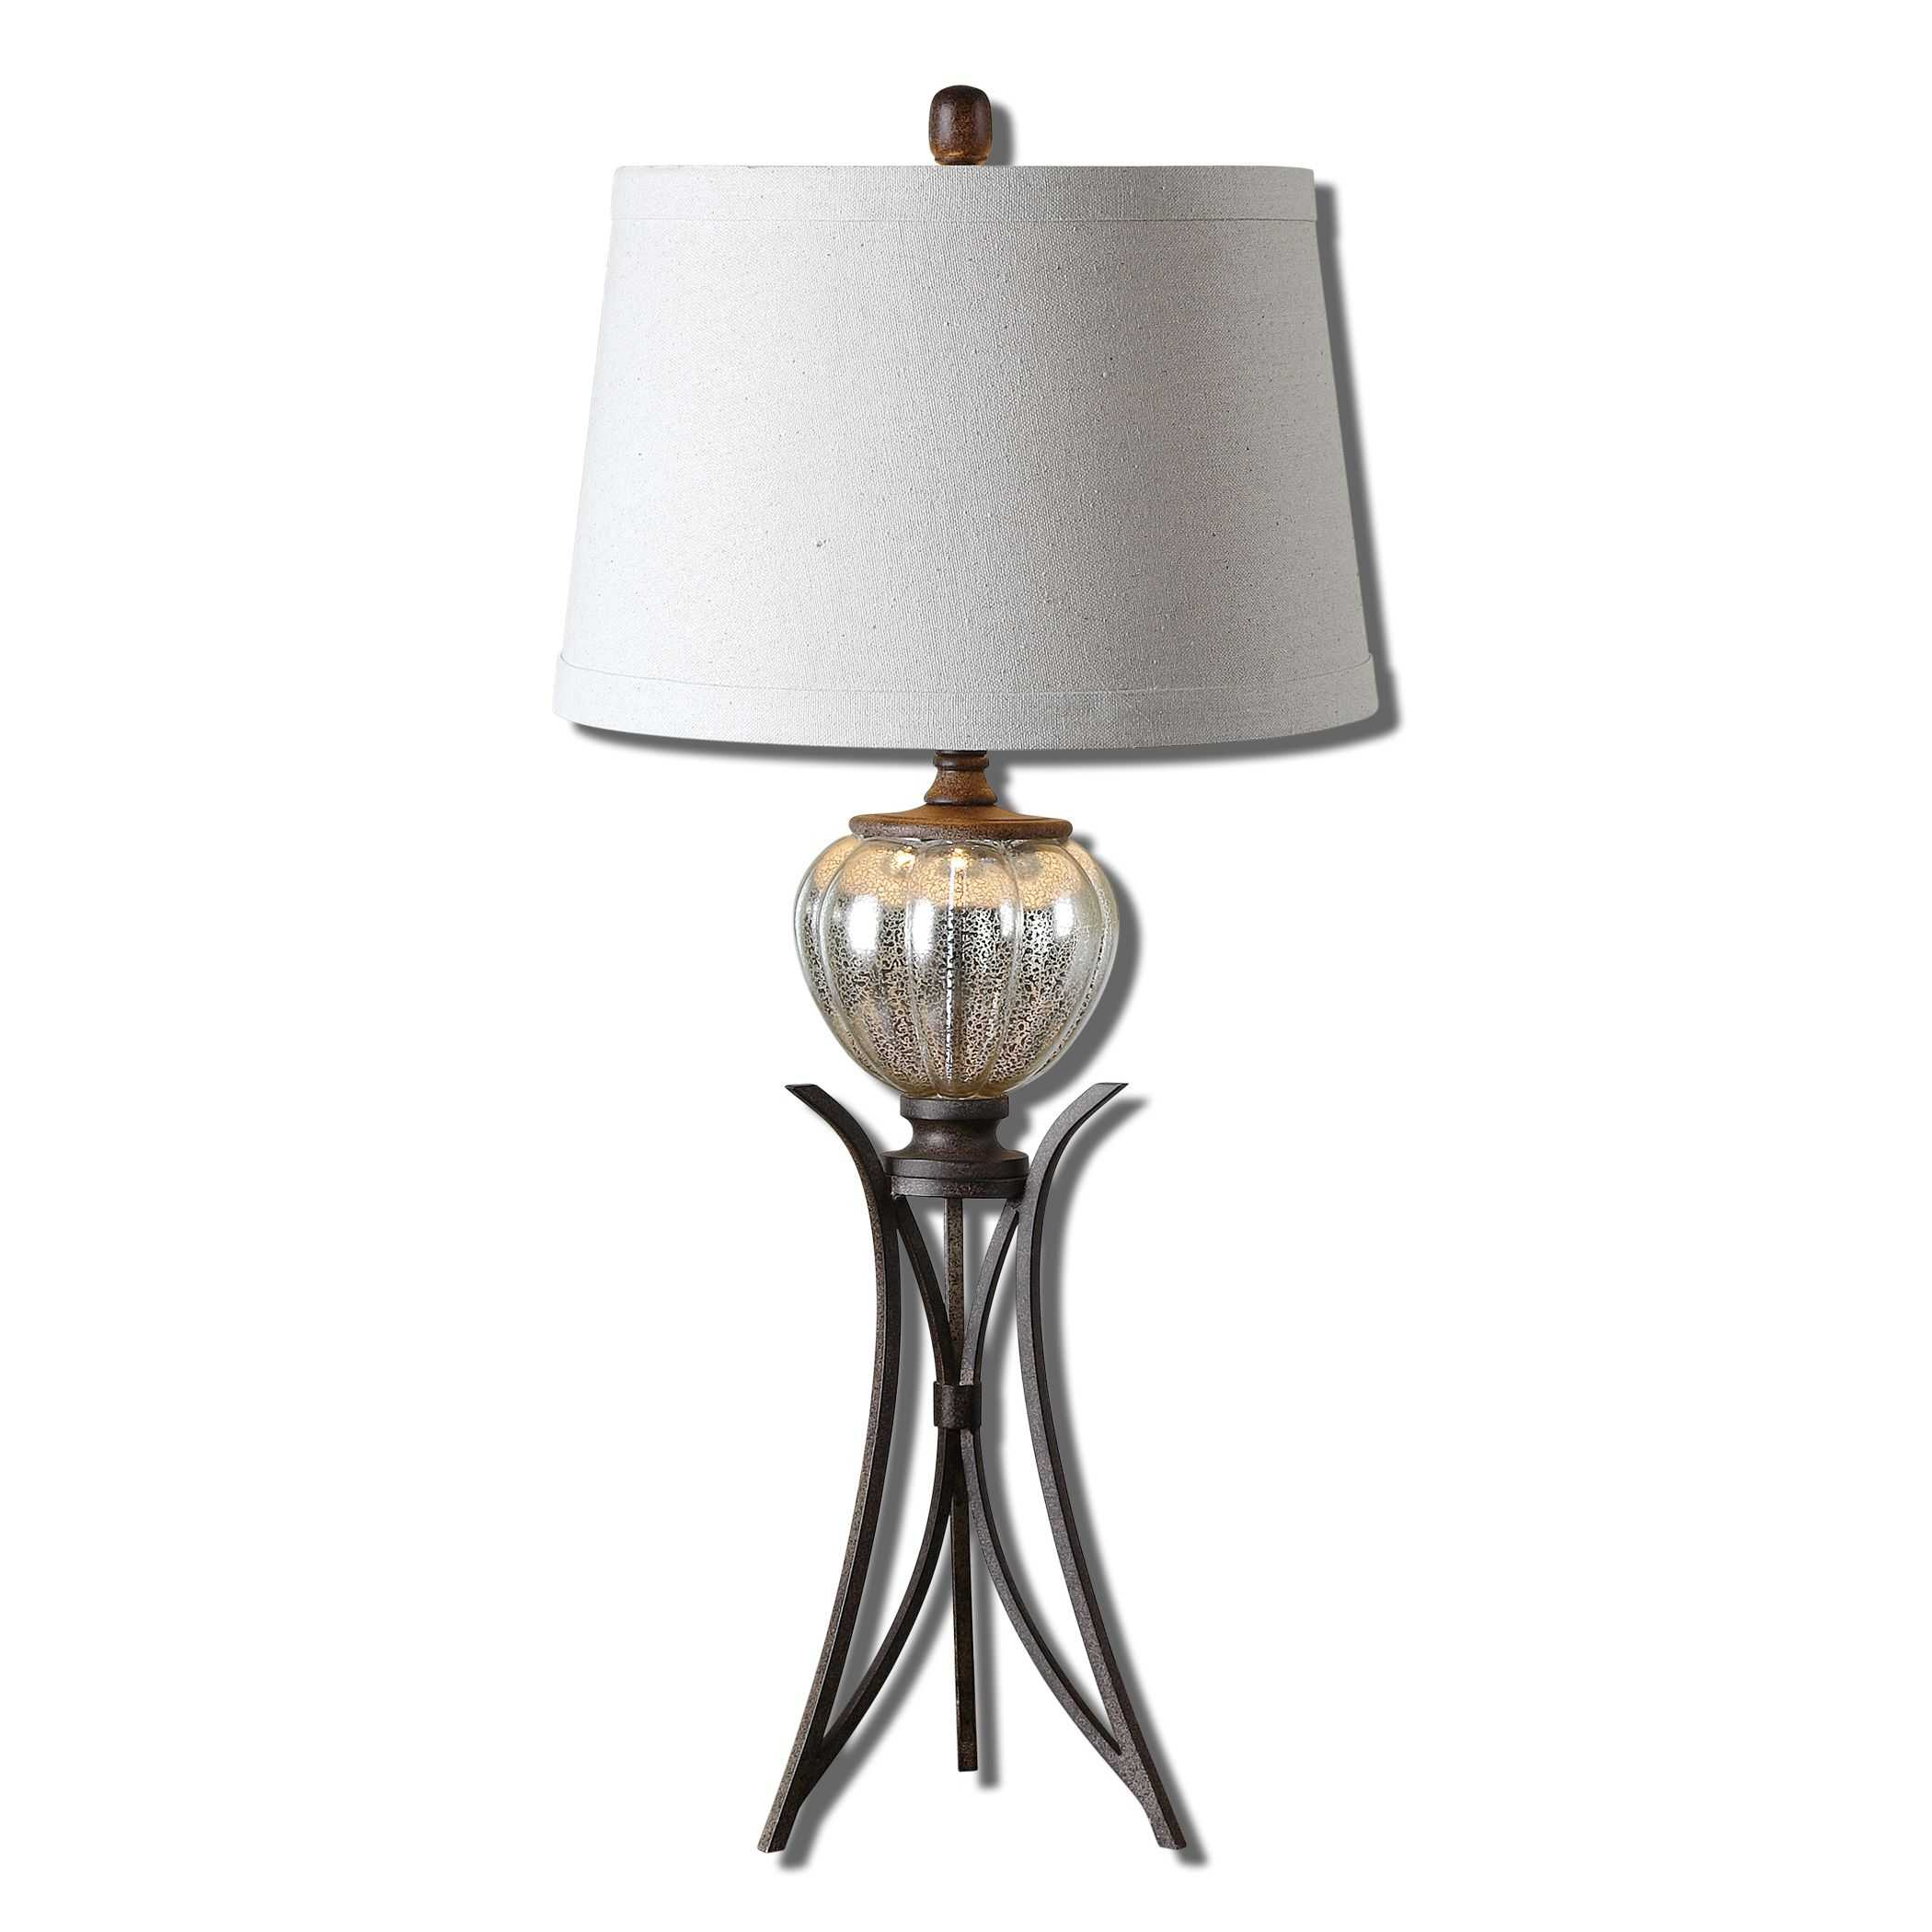 uttermost cebrario mercury glass table lamp. Black Bedroom Furniture Sets. Home Design Ideas